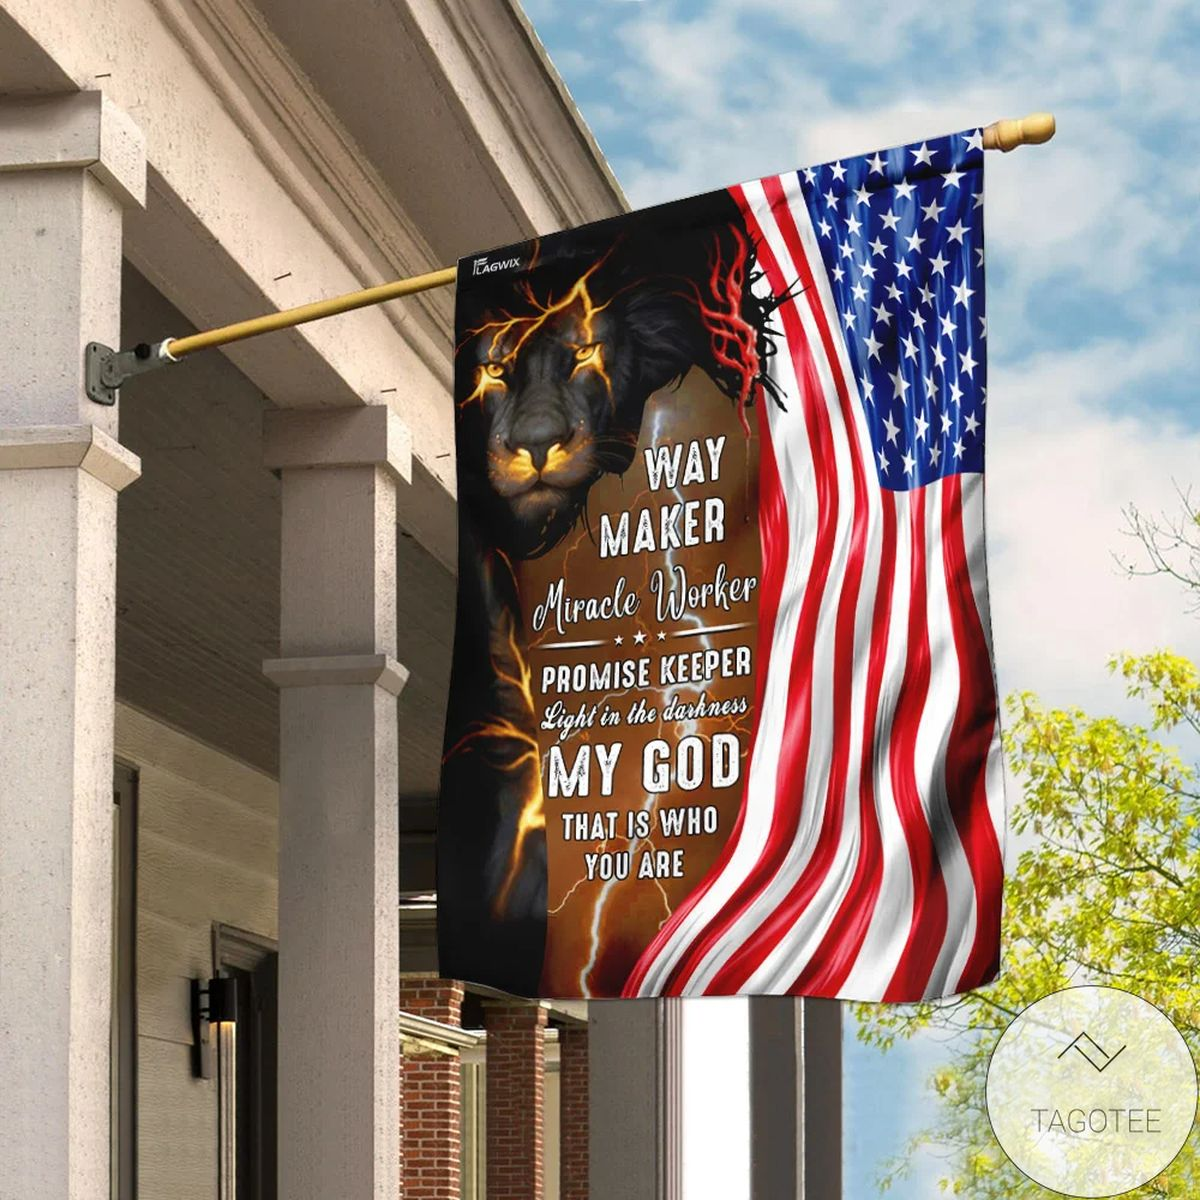 Adult God Jesus Christian Way Maker And Miracle Worker Flag